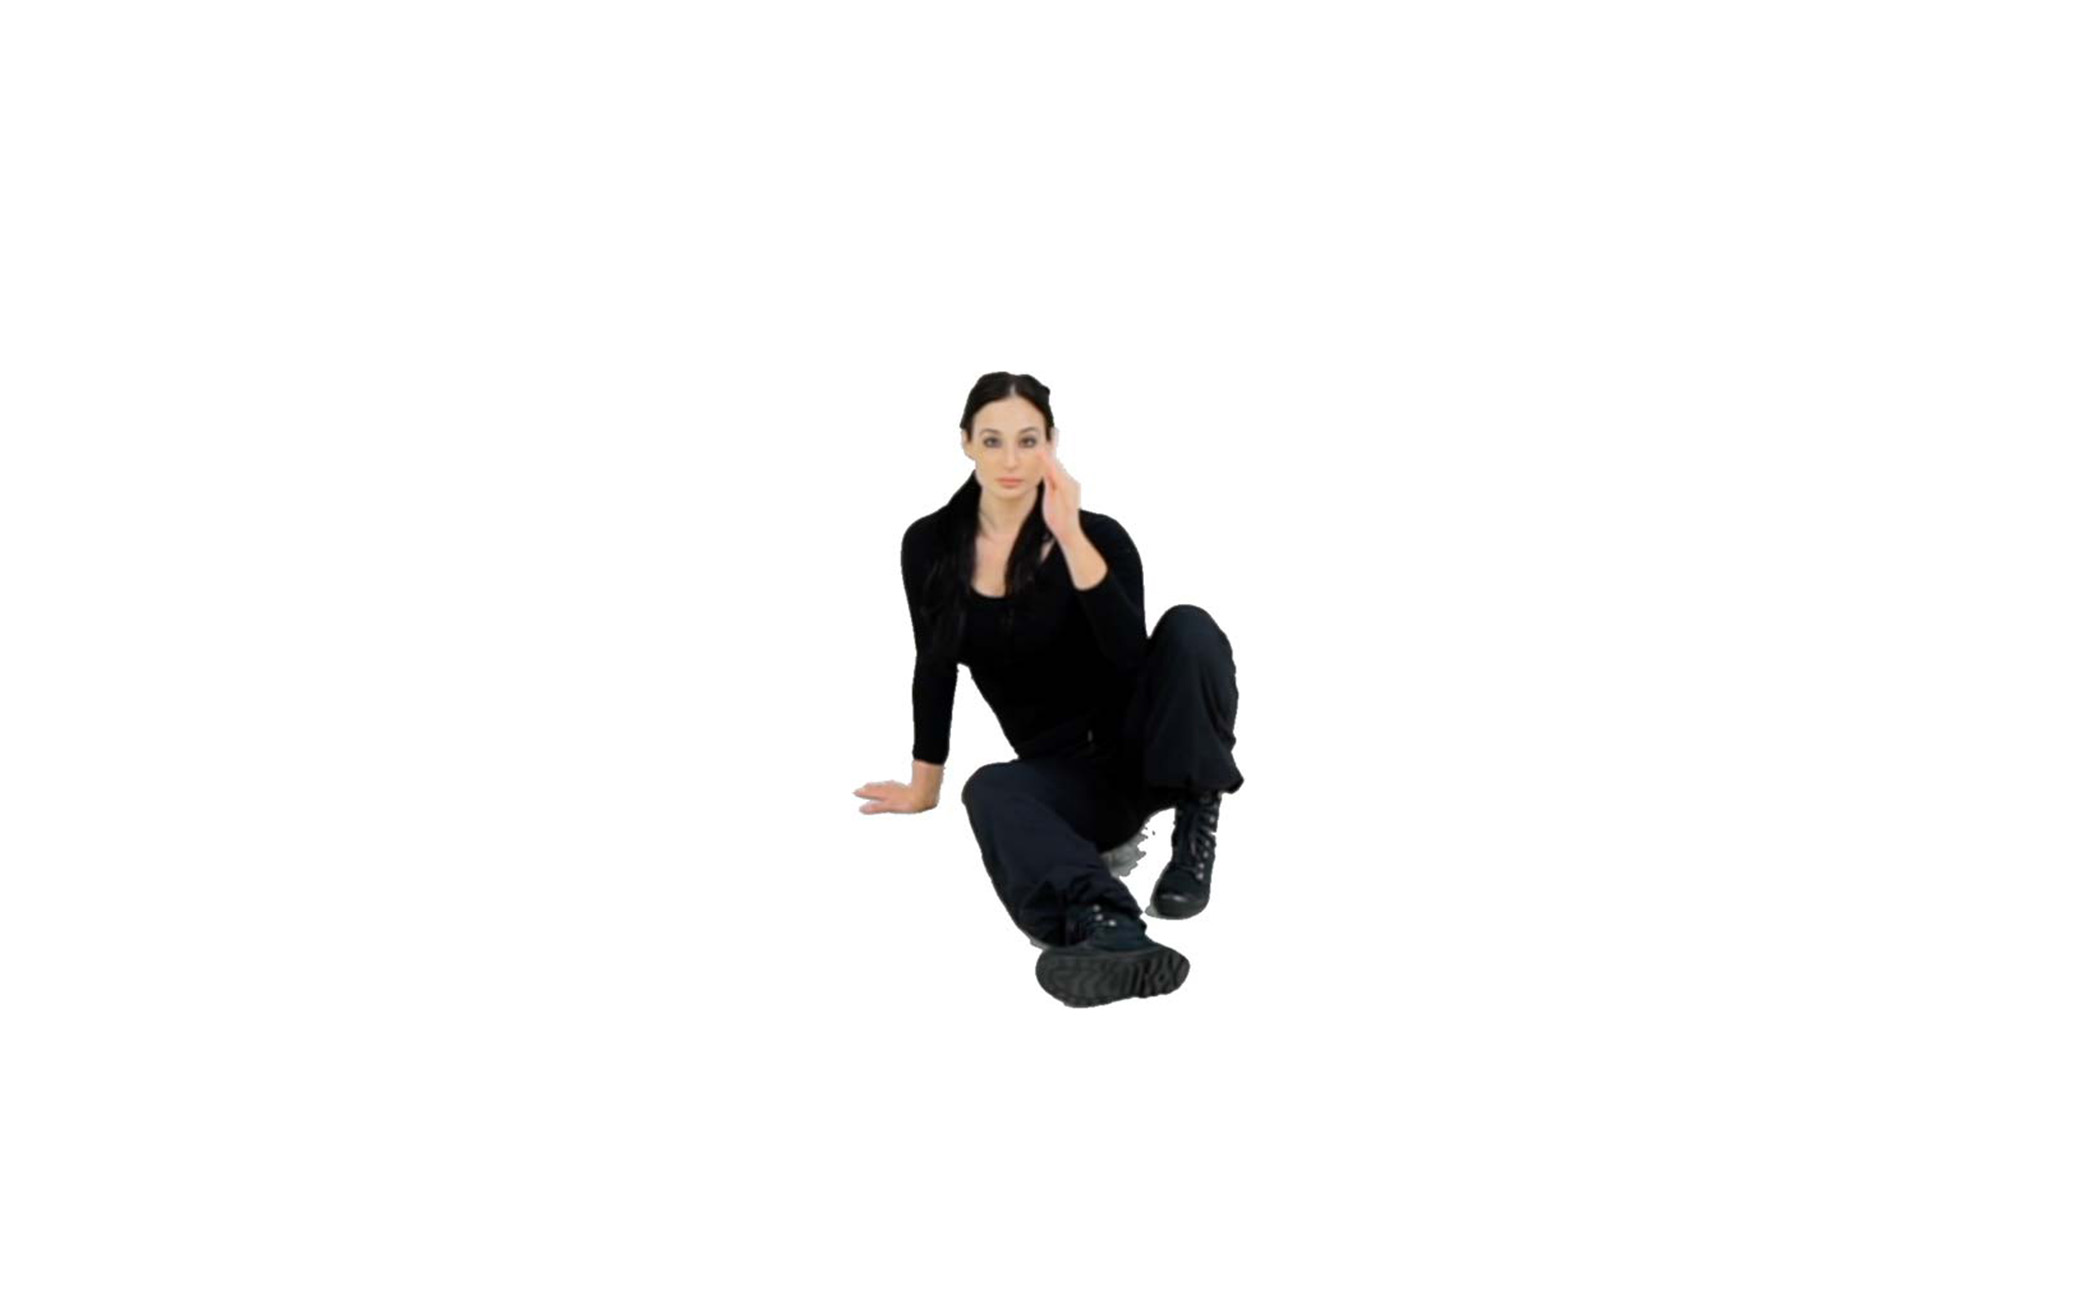 Step 1 - Start in a seated position with your combative leg extended in front of you. Place the same-side hand as the combative leg flat on the ground behind and slightly to the side of you. The opposite leg should be bent with your foot flat on the ground, and that hand should be up by your face in the Survival upper body position.